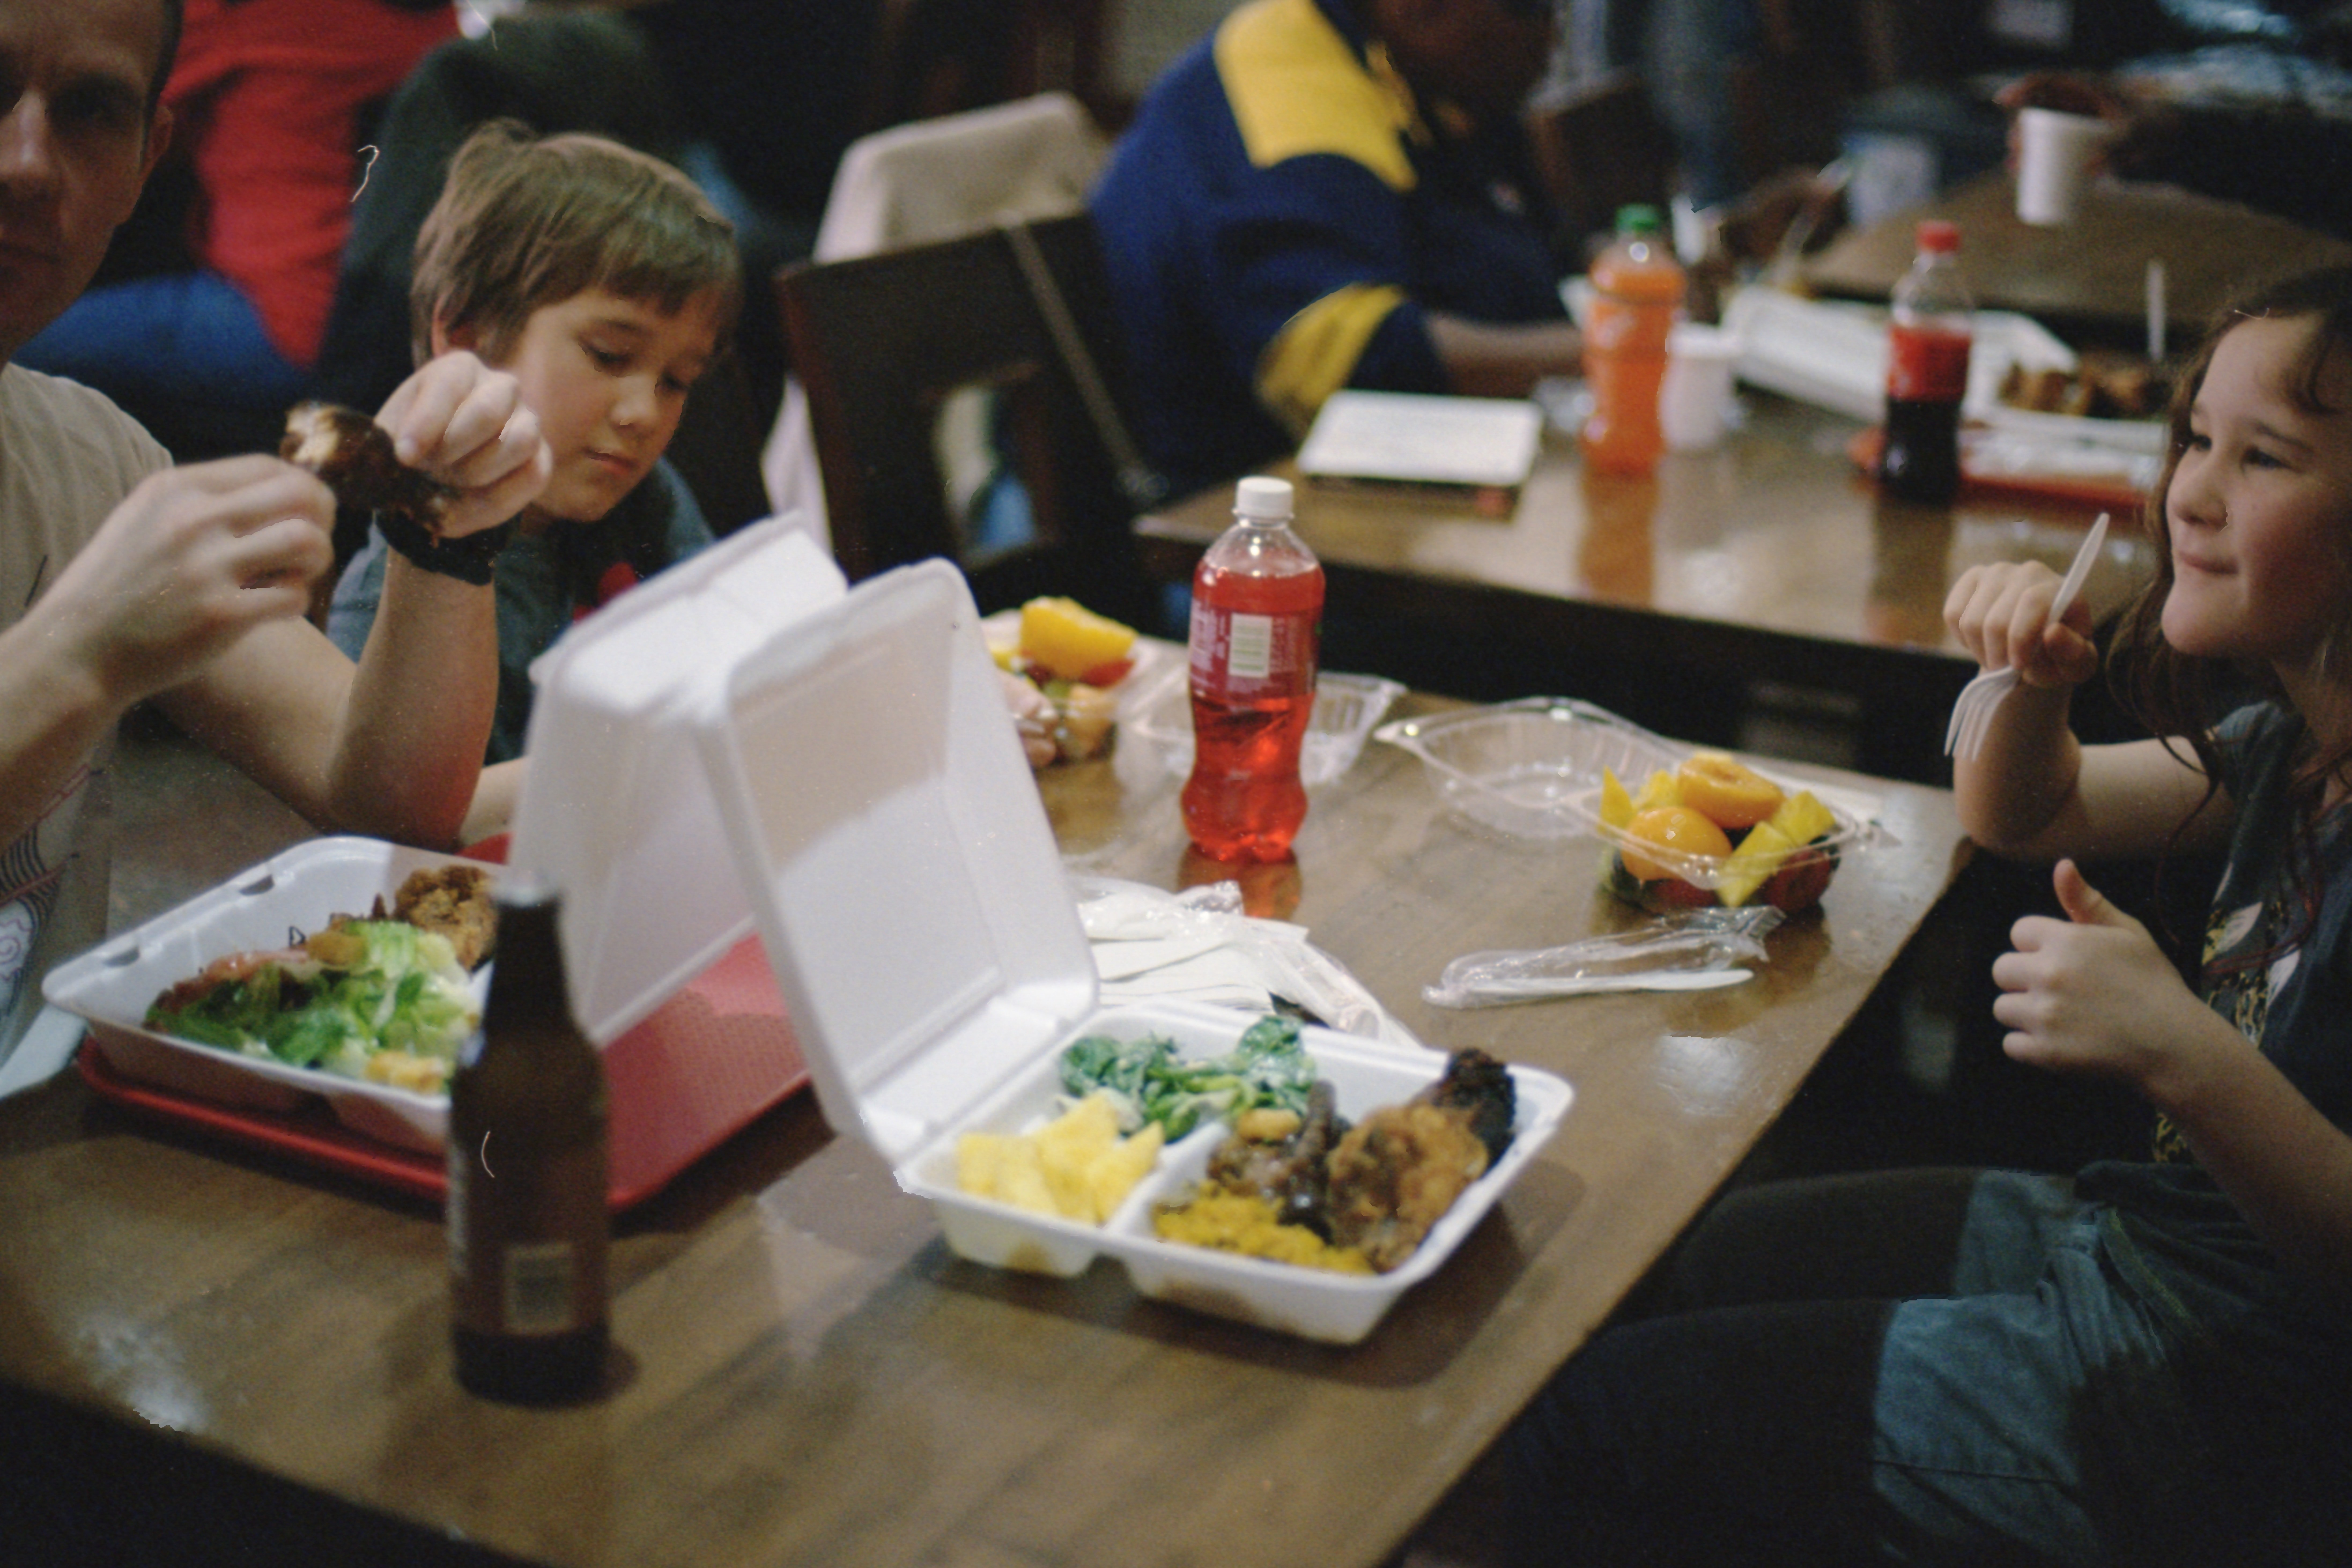 Kids dining with their family | Photo: Unsplash